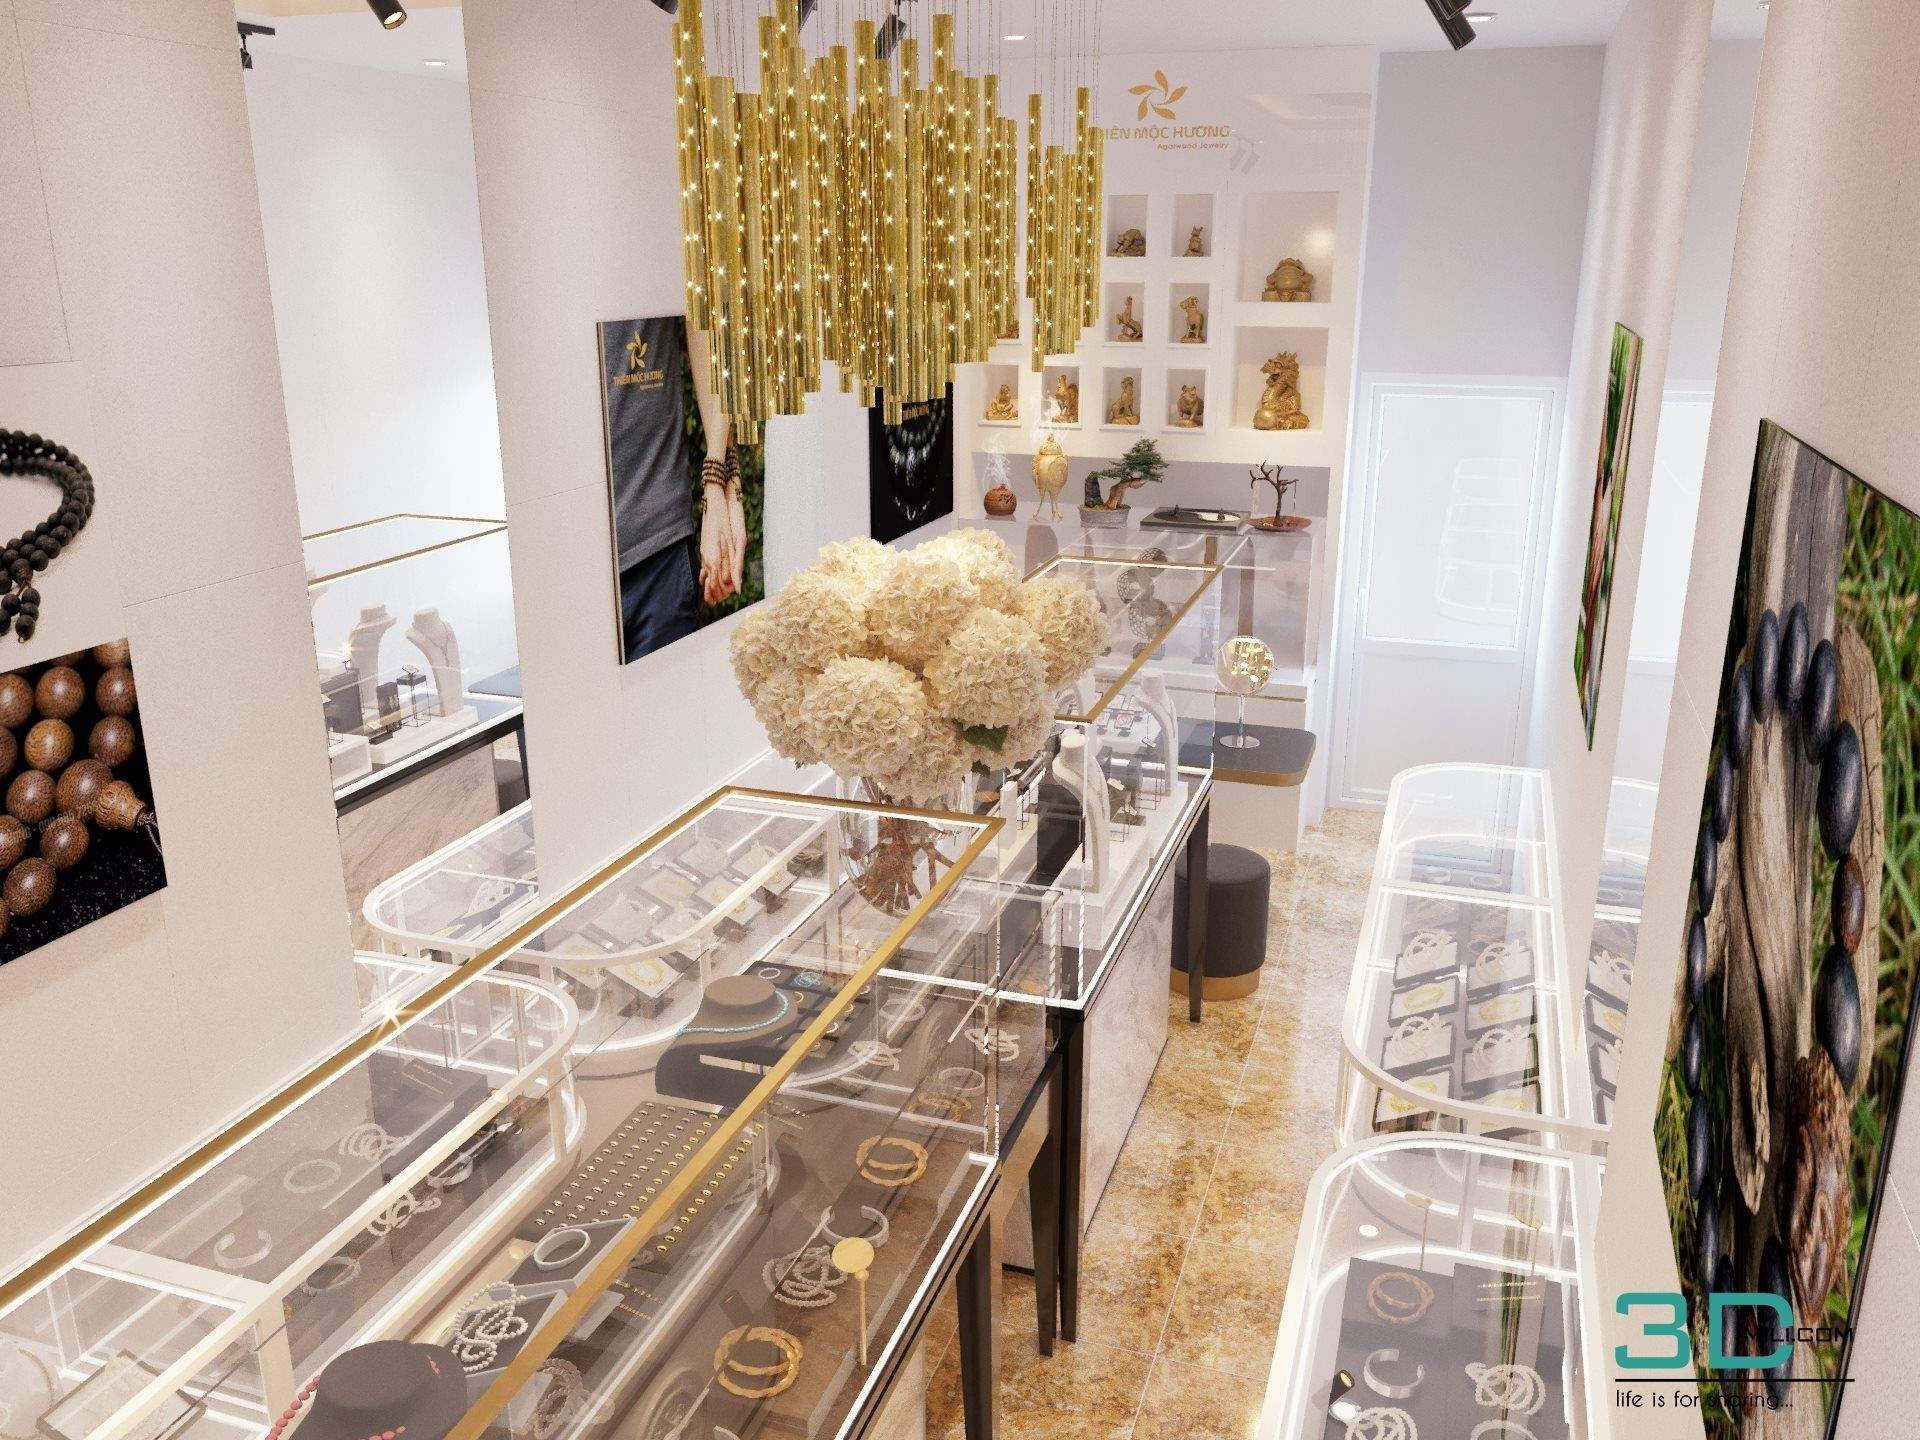 02 Jewelry Shop 3dsmax File Free Download Shop Interiors